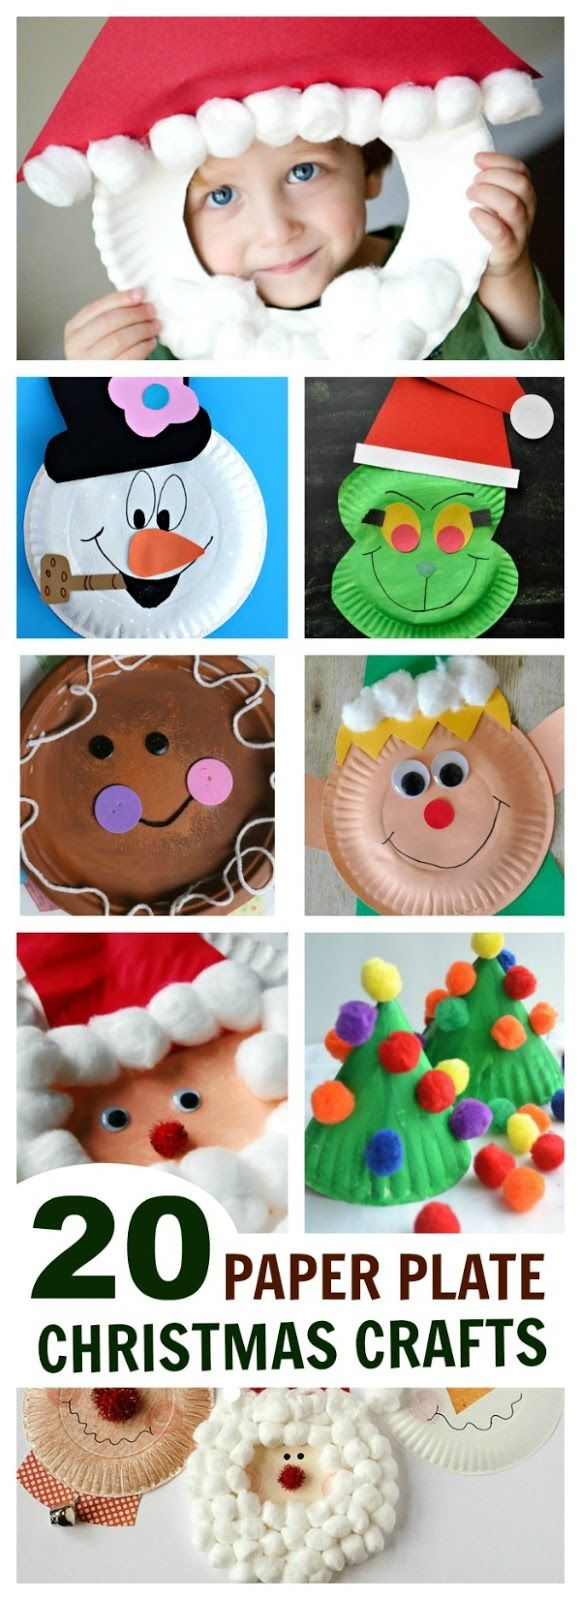 20 EASY & FUN PAPER PLATE CHRISTMAS CRAFTS | Holiday Crafts for Kids